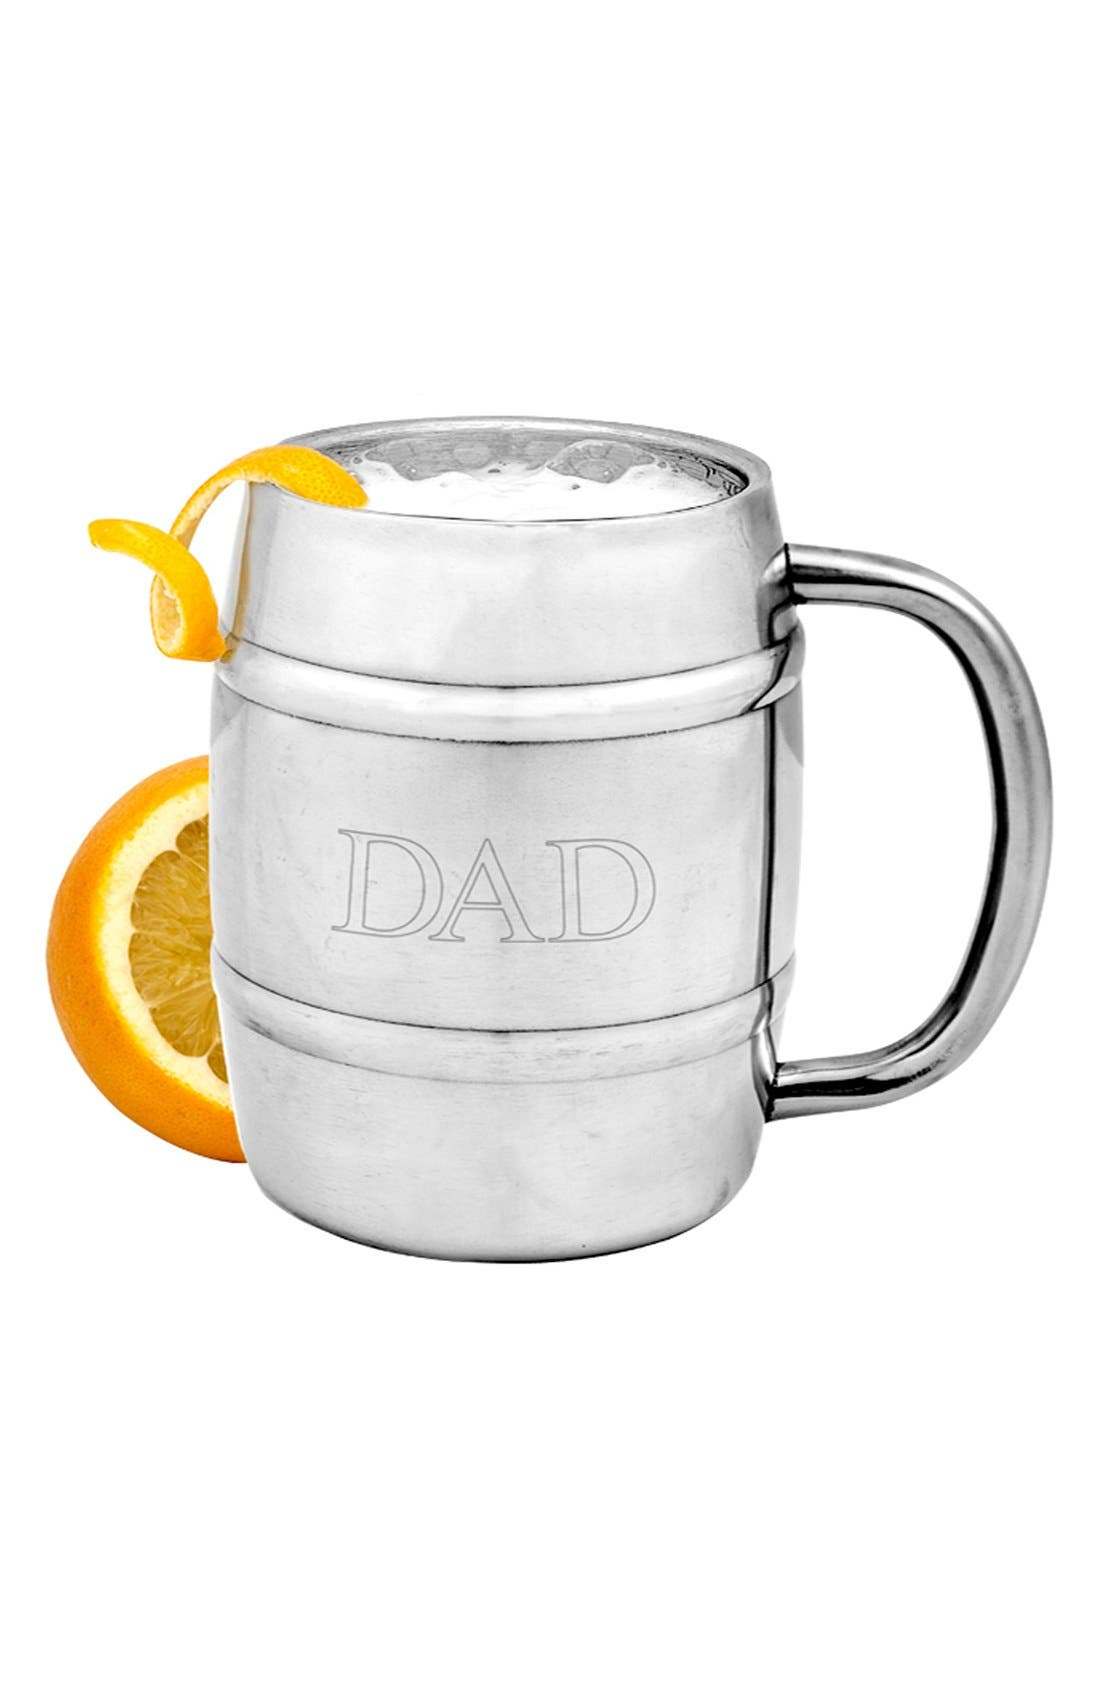 'Dad' Keg Mug,                         Main,                         color, Silver